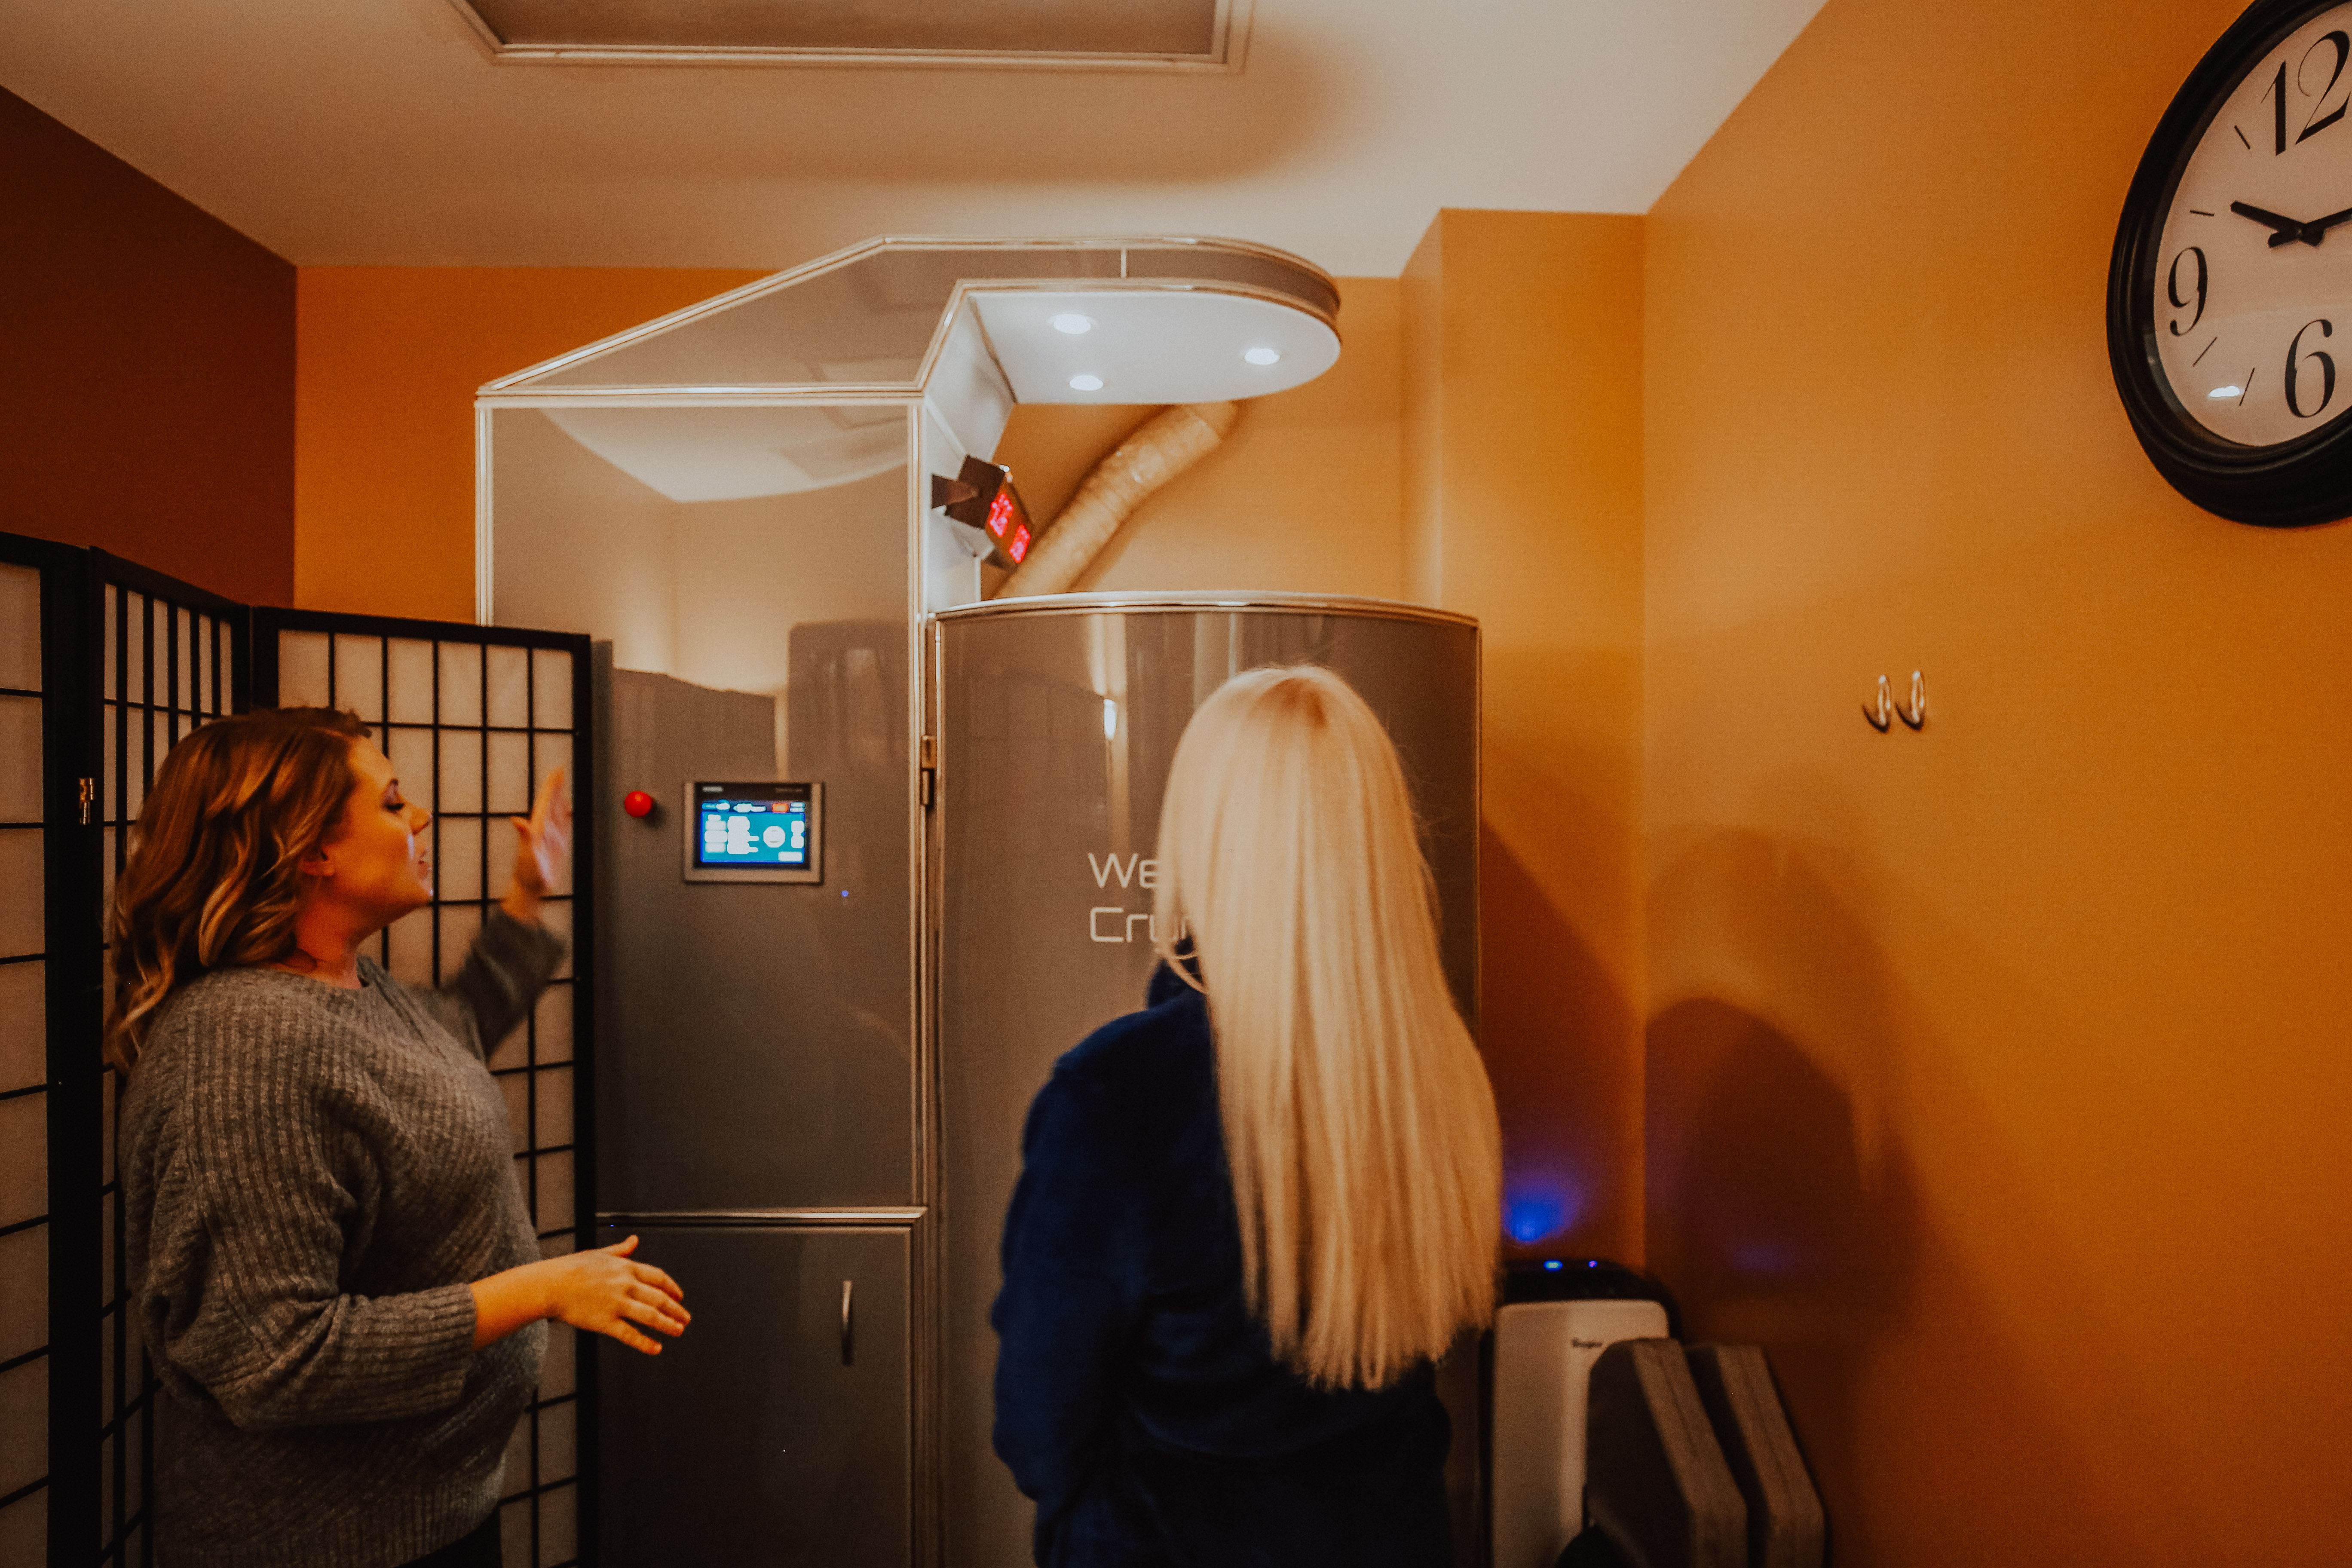 west omaha cryotherapy fashionably blonde